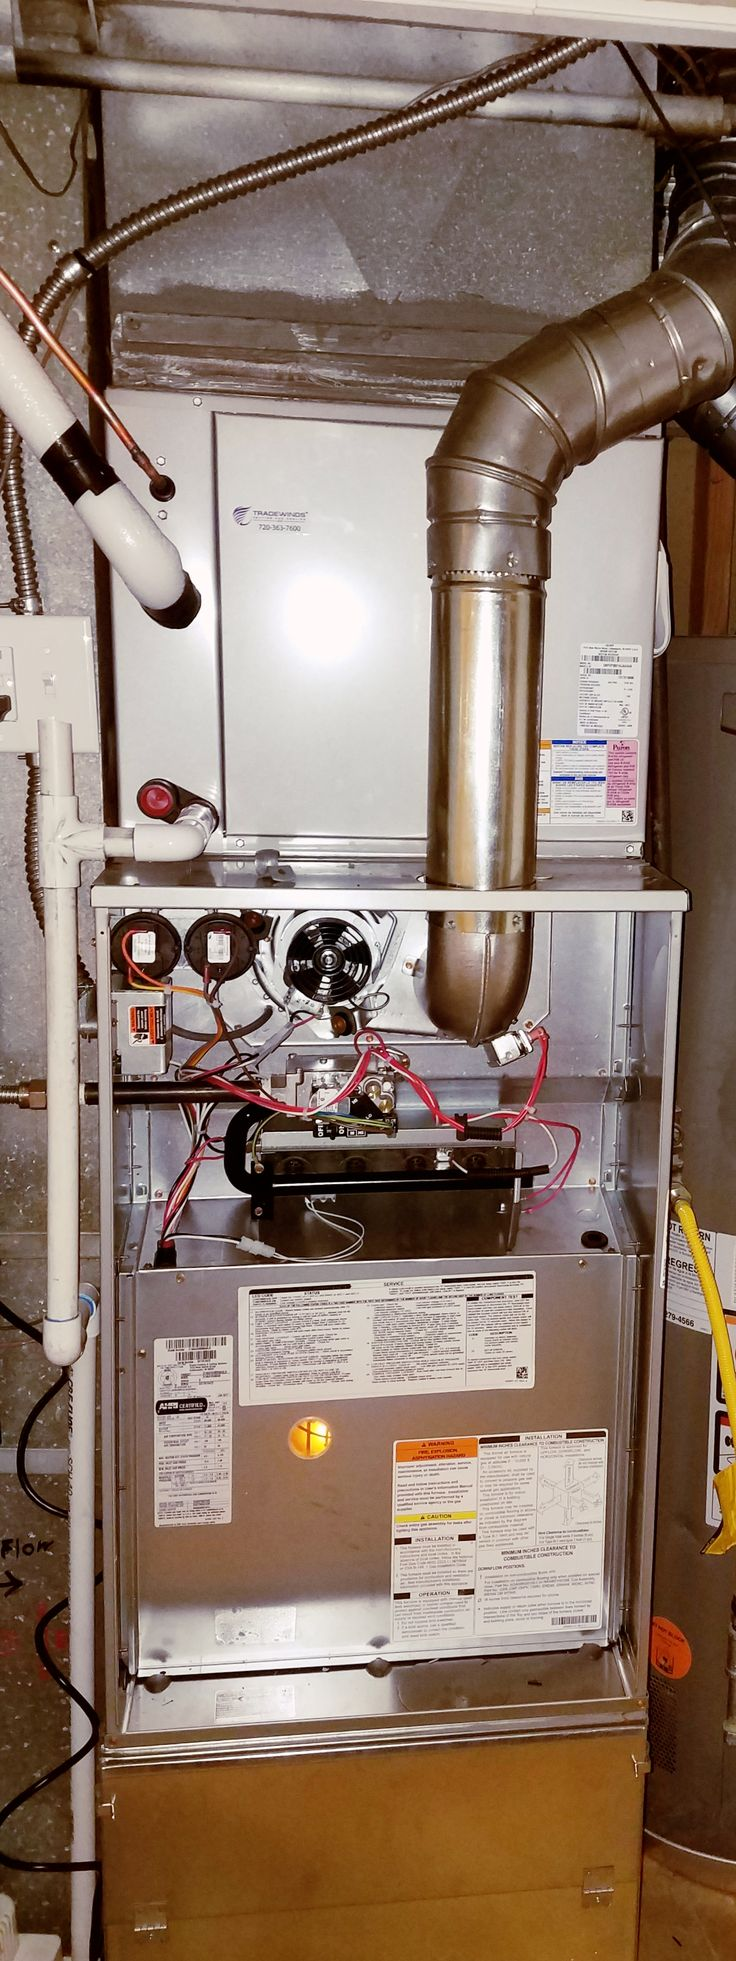 Average cost of new furnace installed - Furnace Installed By Tradewinds Heating And Cooling Inc In Wheat Ridge Colorado Call